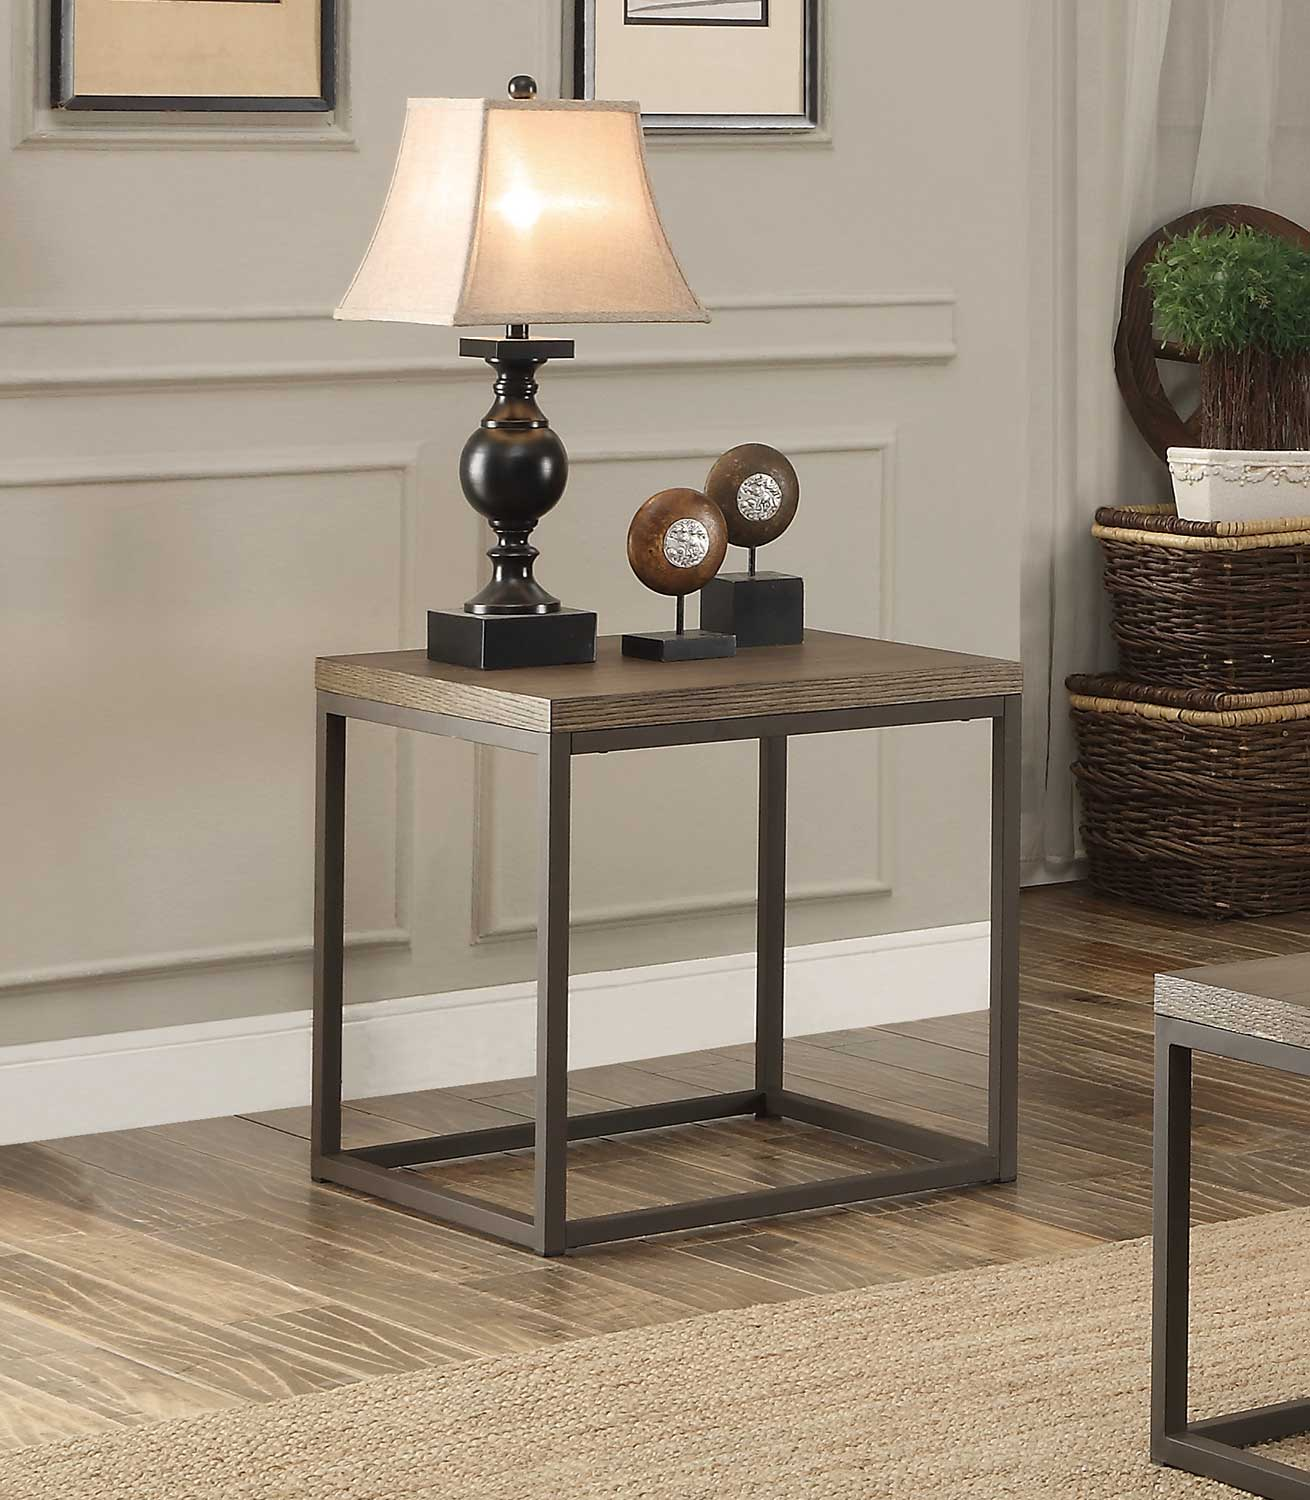 Homelegance Daria End Table - Weathered Wood Table Top with Metal Framing